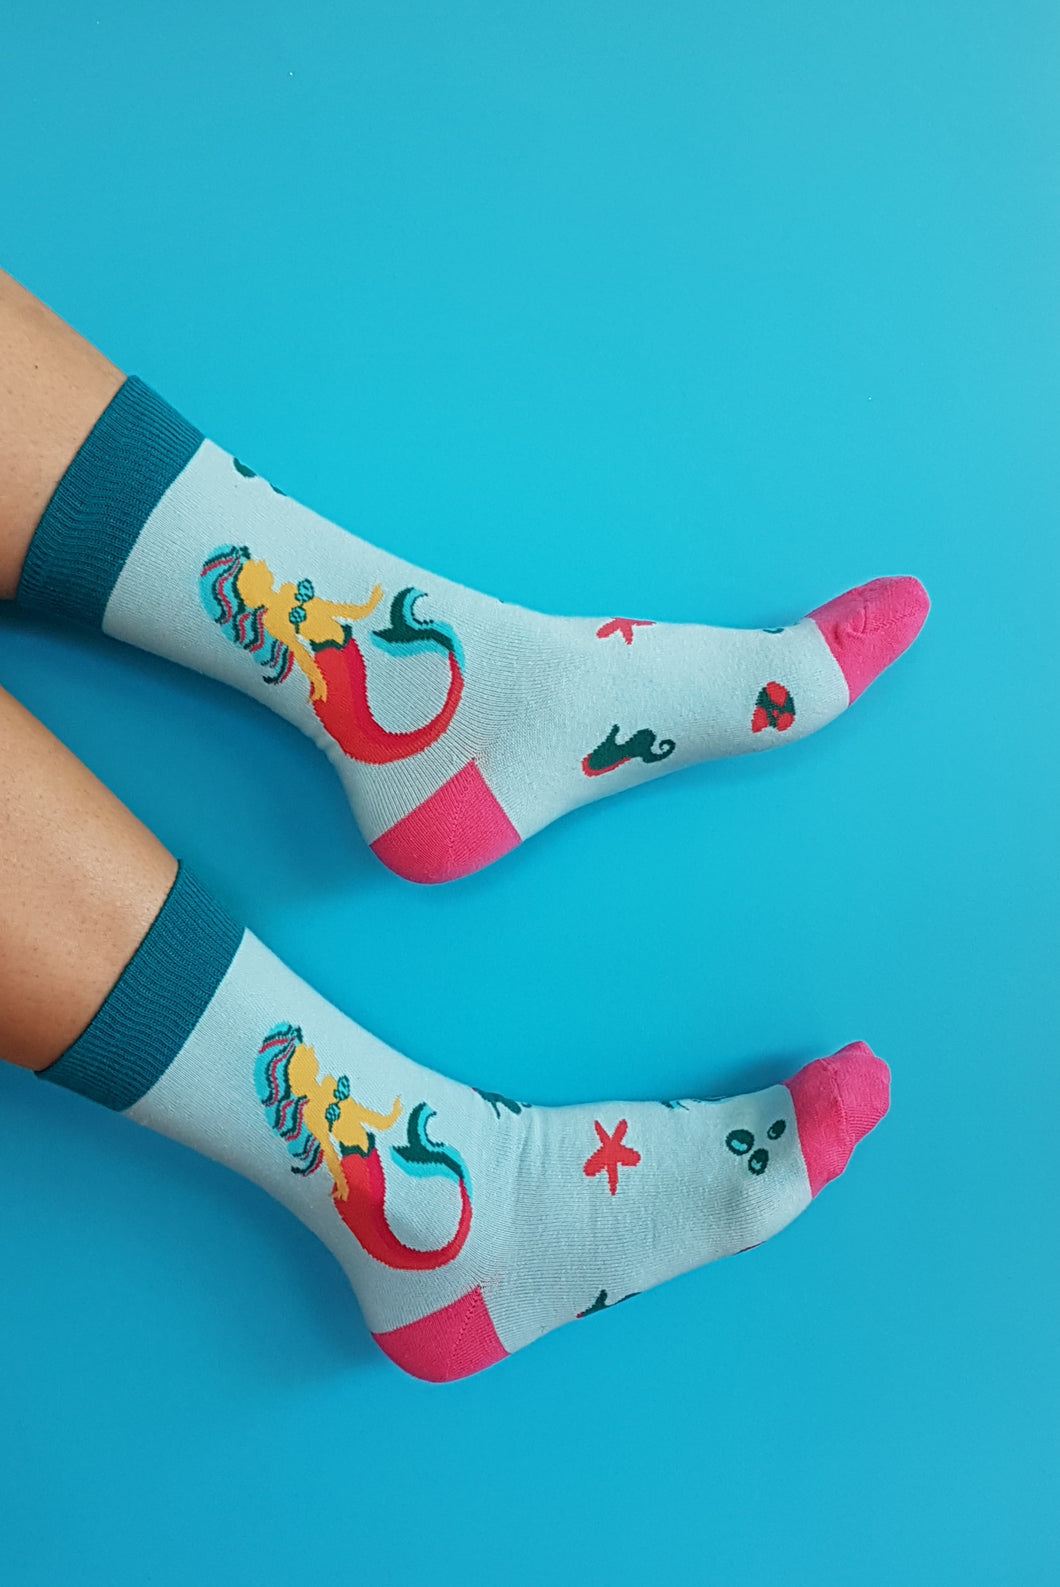 Mermaid Socks